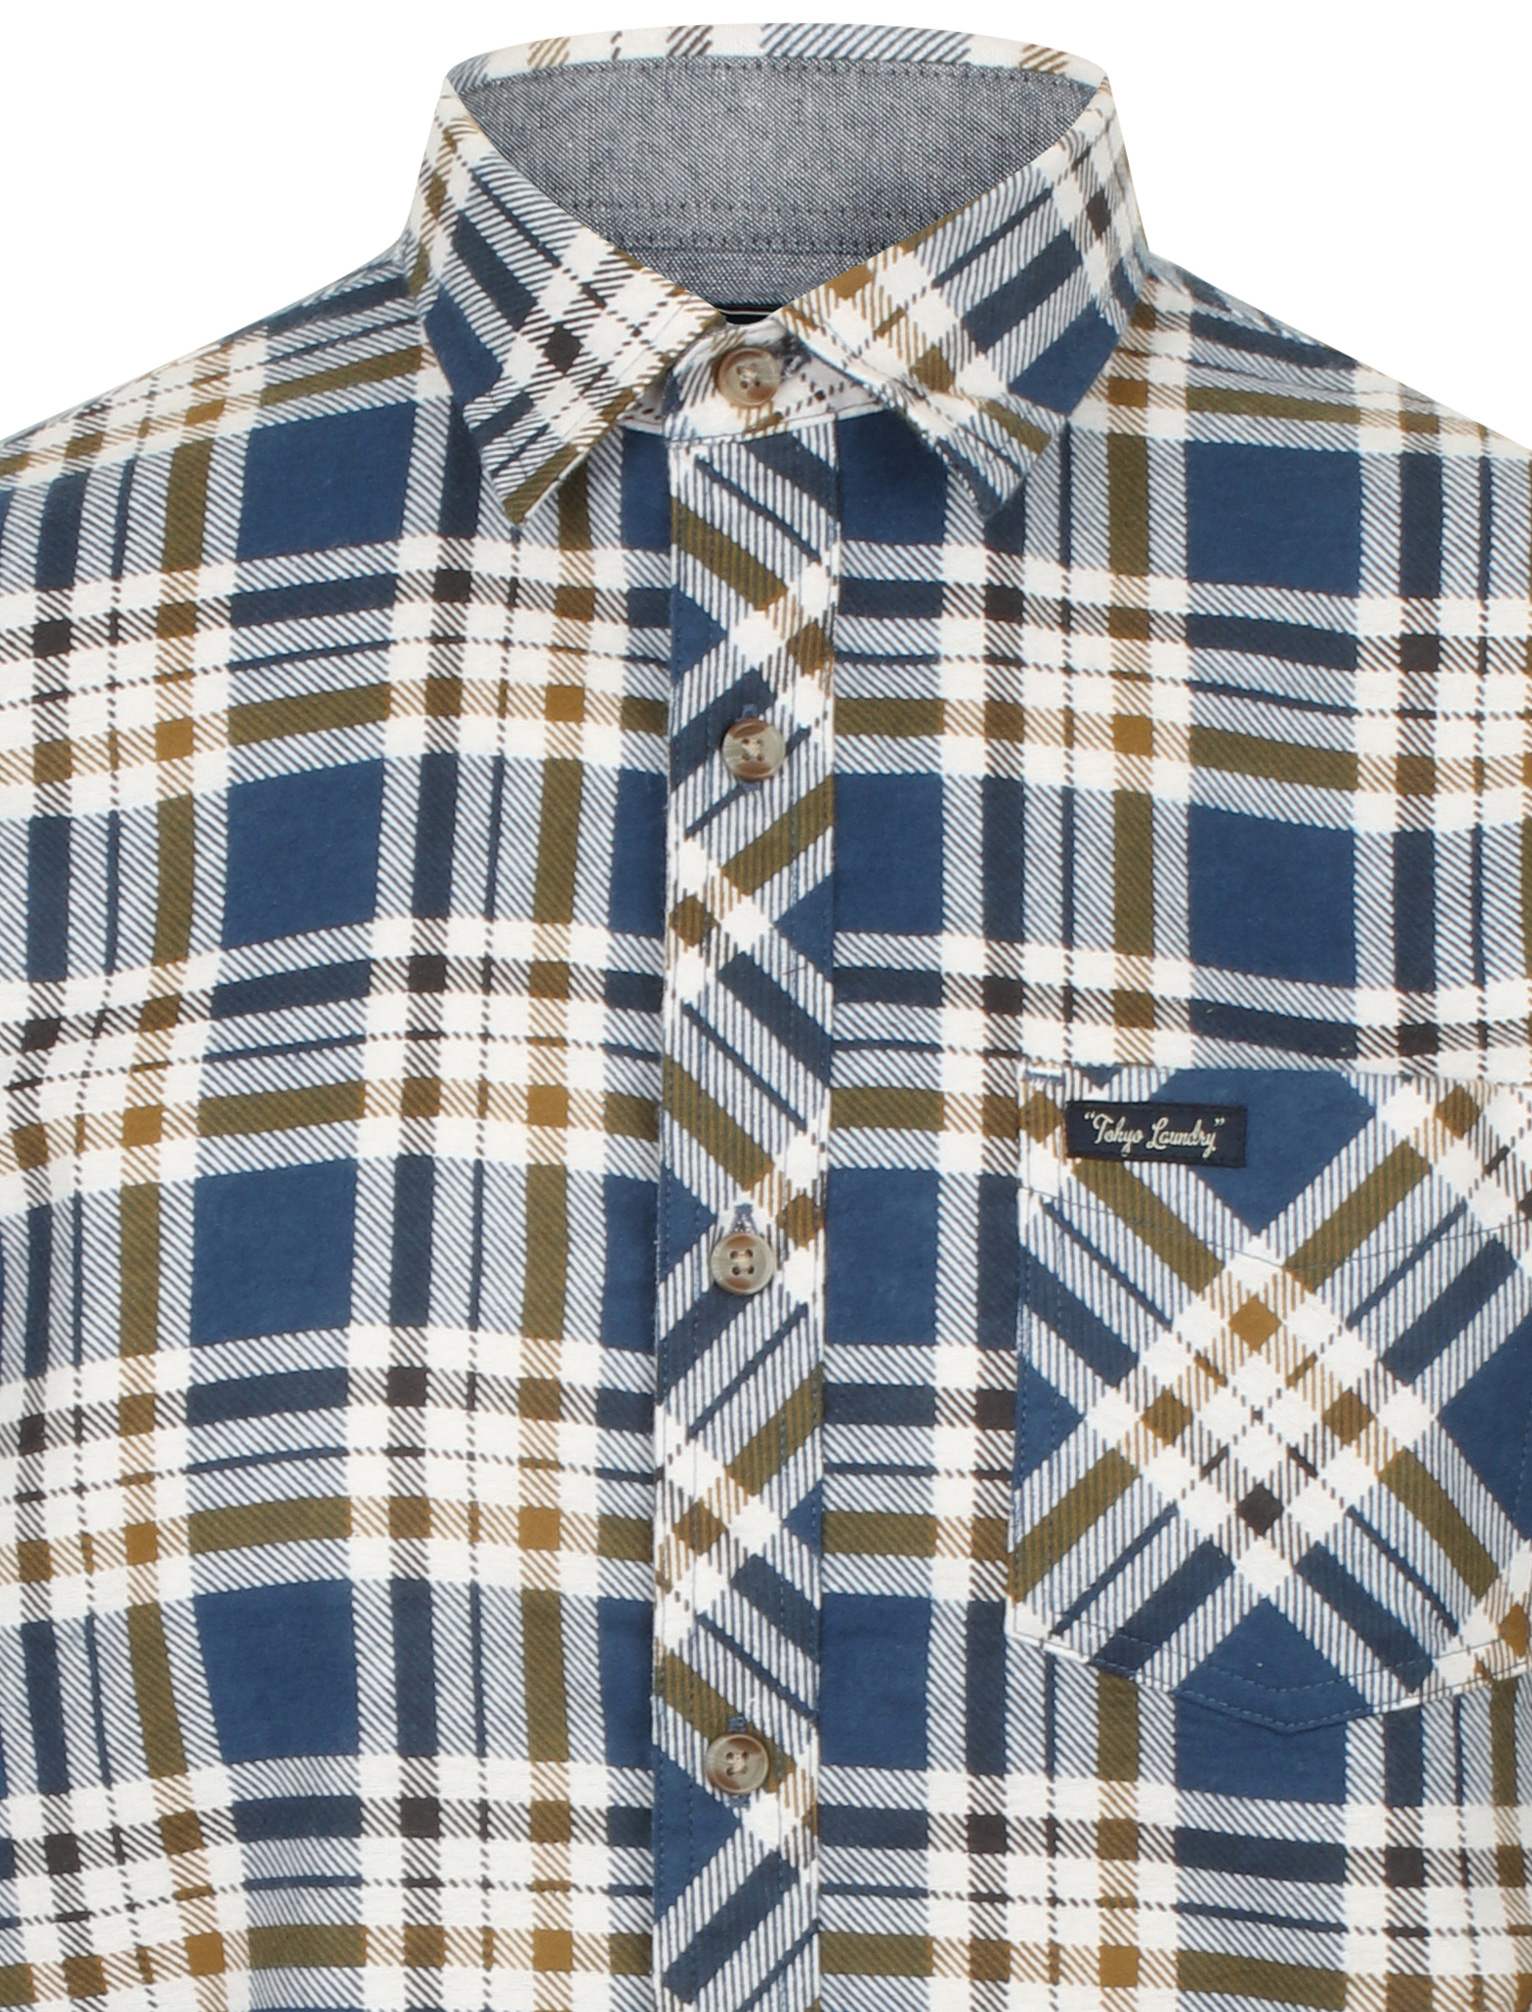 New-Mens-Tokyo-Laundry-Cotton-Long-Sleeve-Checked-Flannel-Shirt-Size-S-XL thumbnail 35